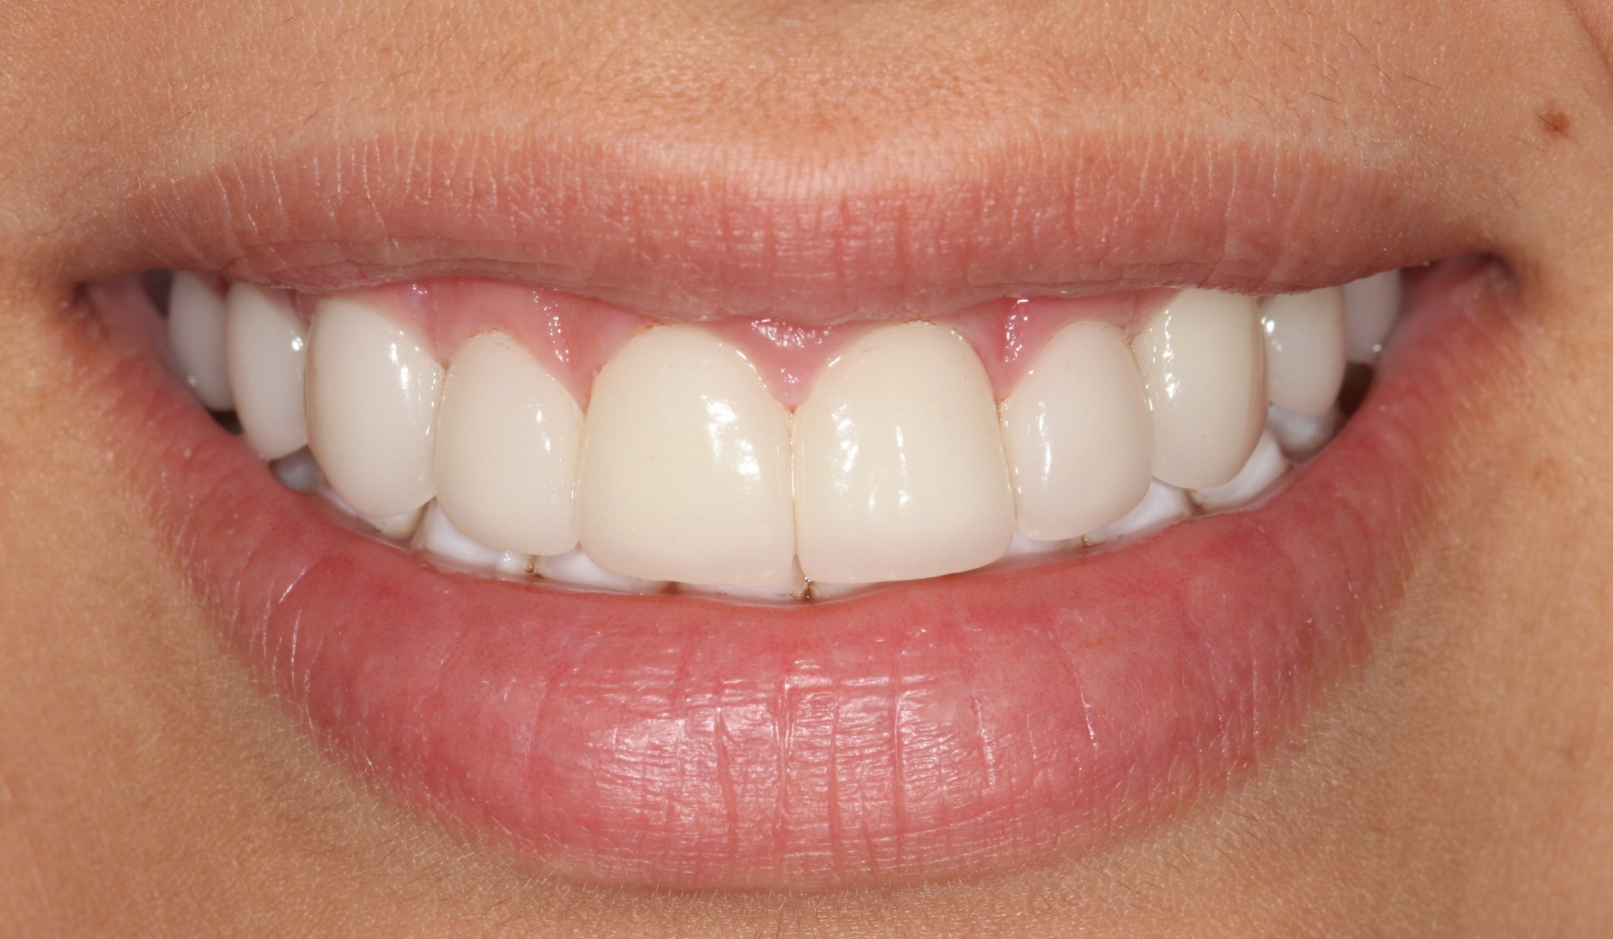 AFTER:     Multi-disciplinary dentistry (Orthodontic treatment, followed by cosmetic dentistry) was incorporated for this final result.